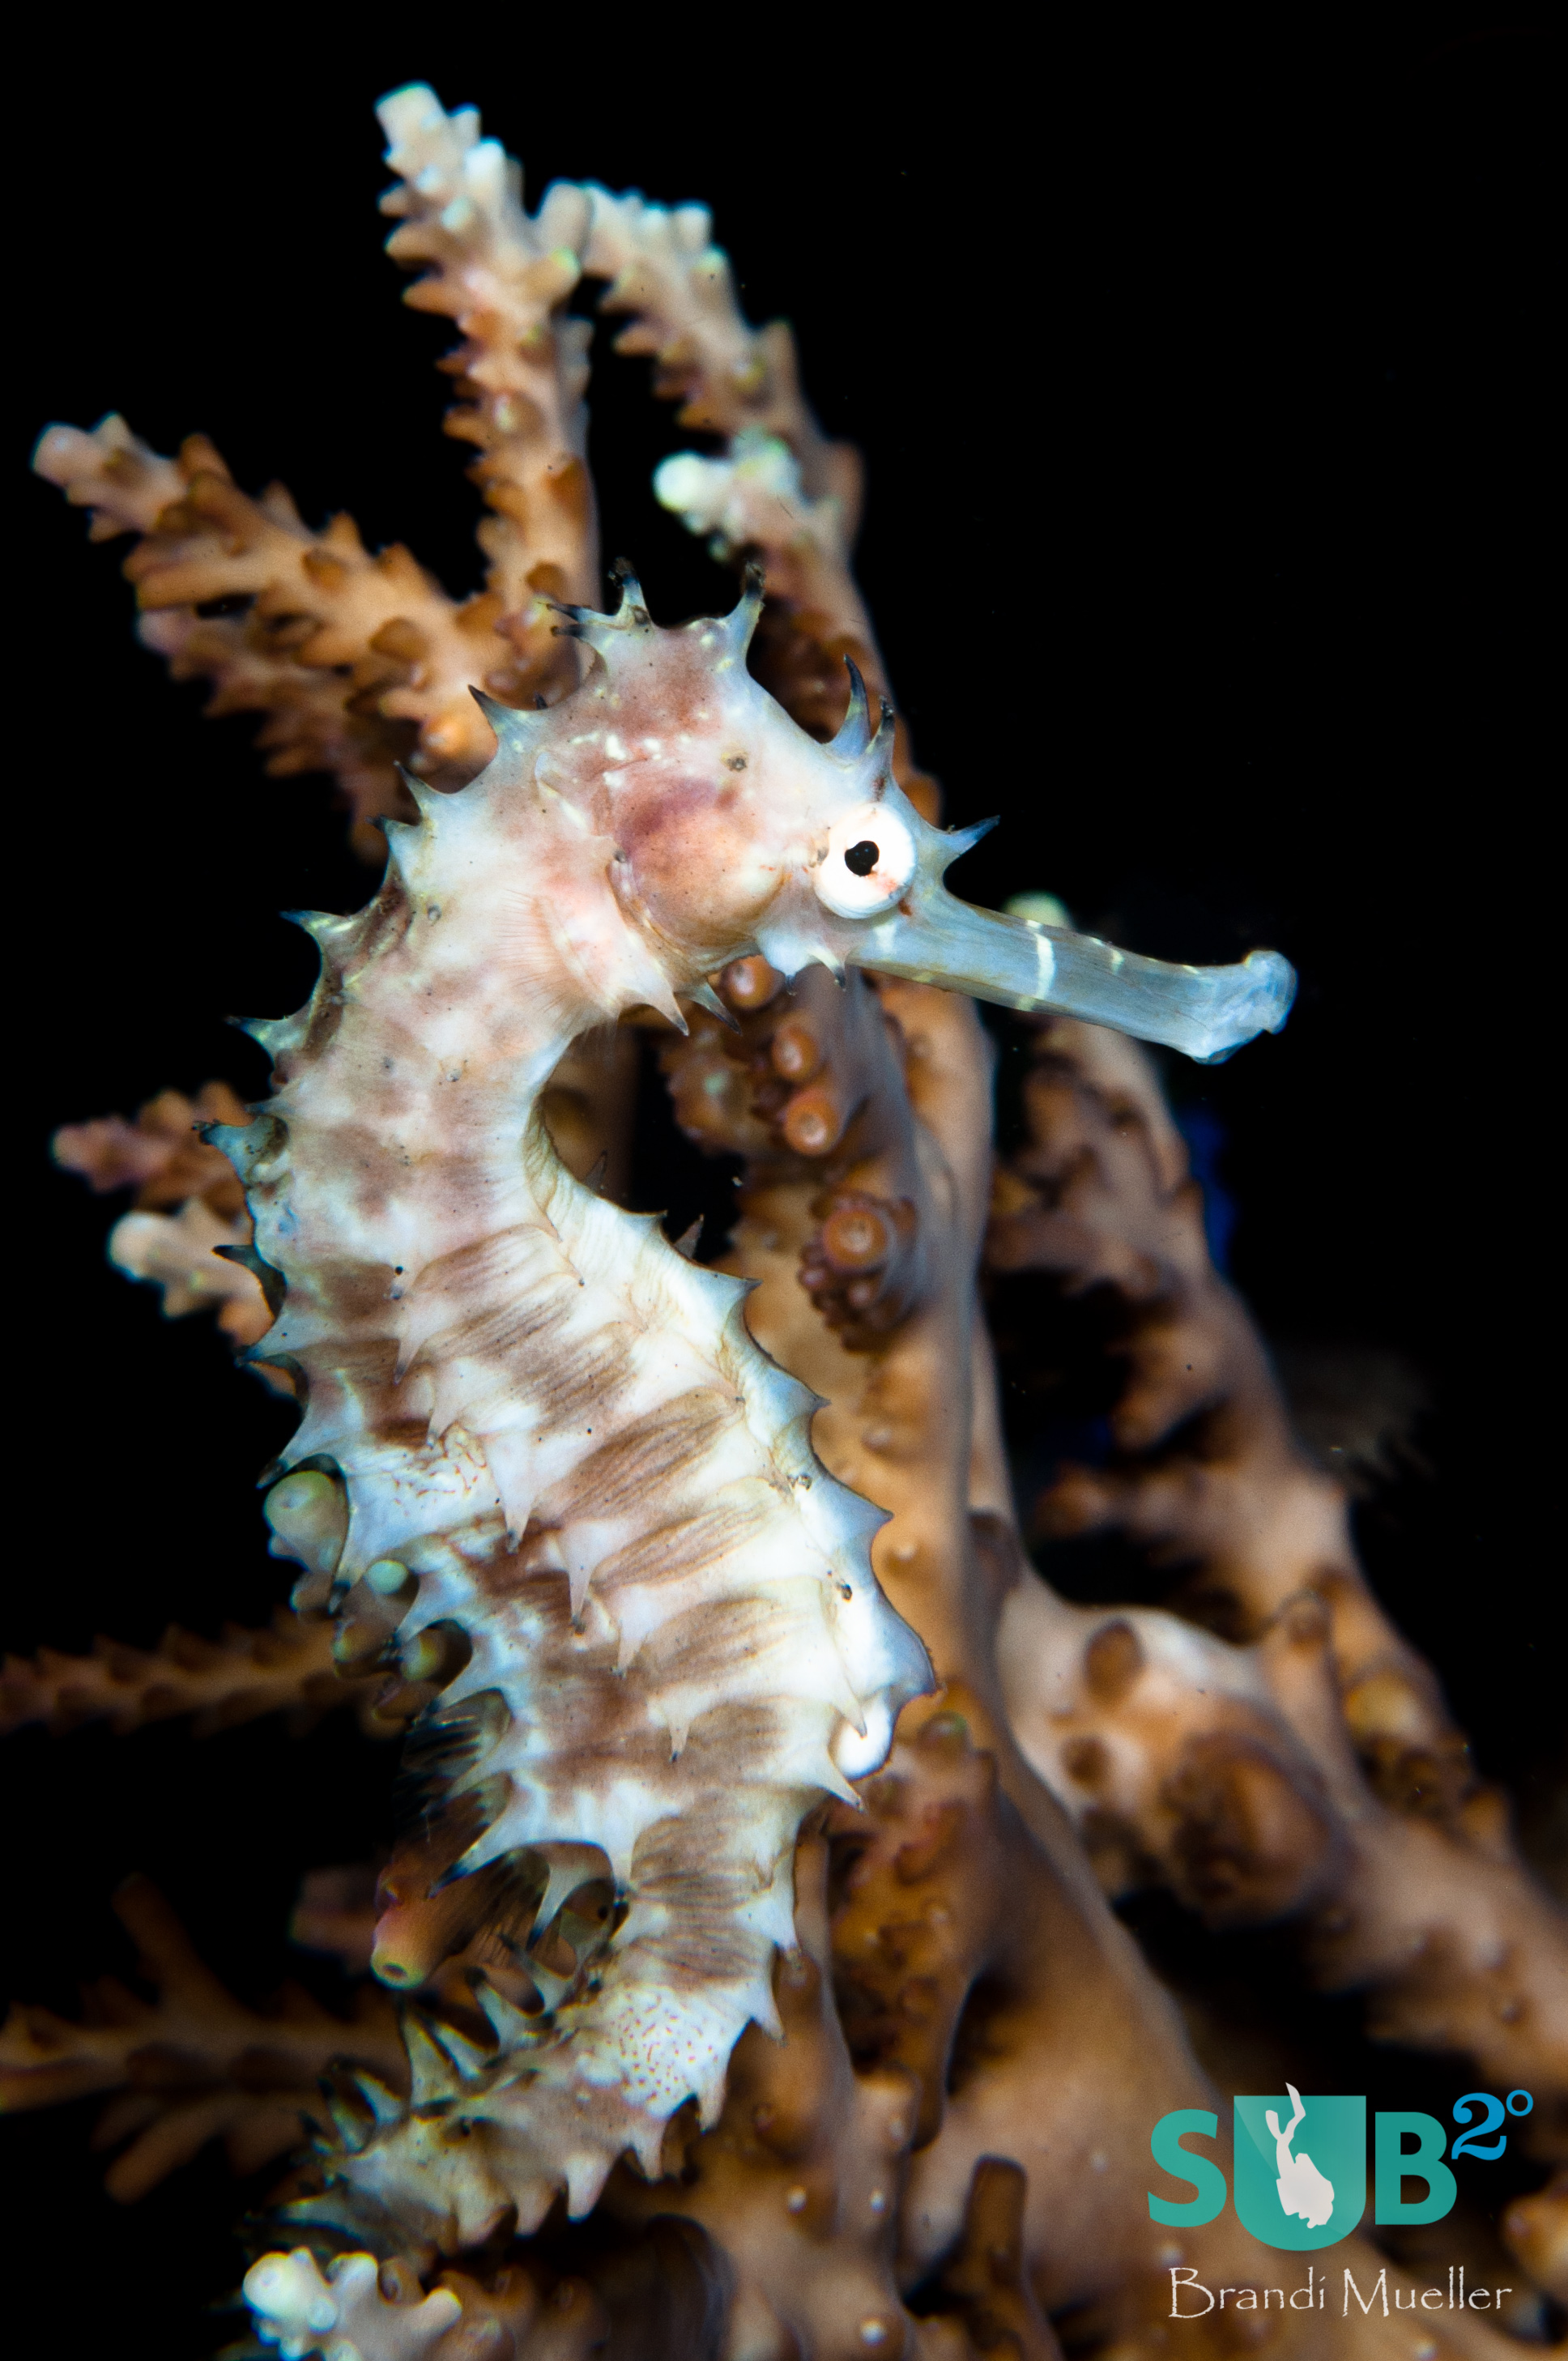 A thorny seahorse tries to blend in with surrounding hard coral.